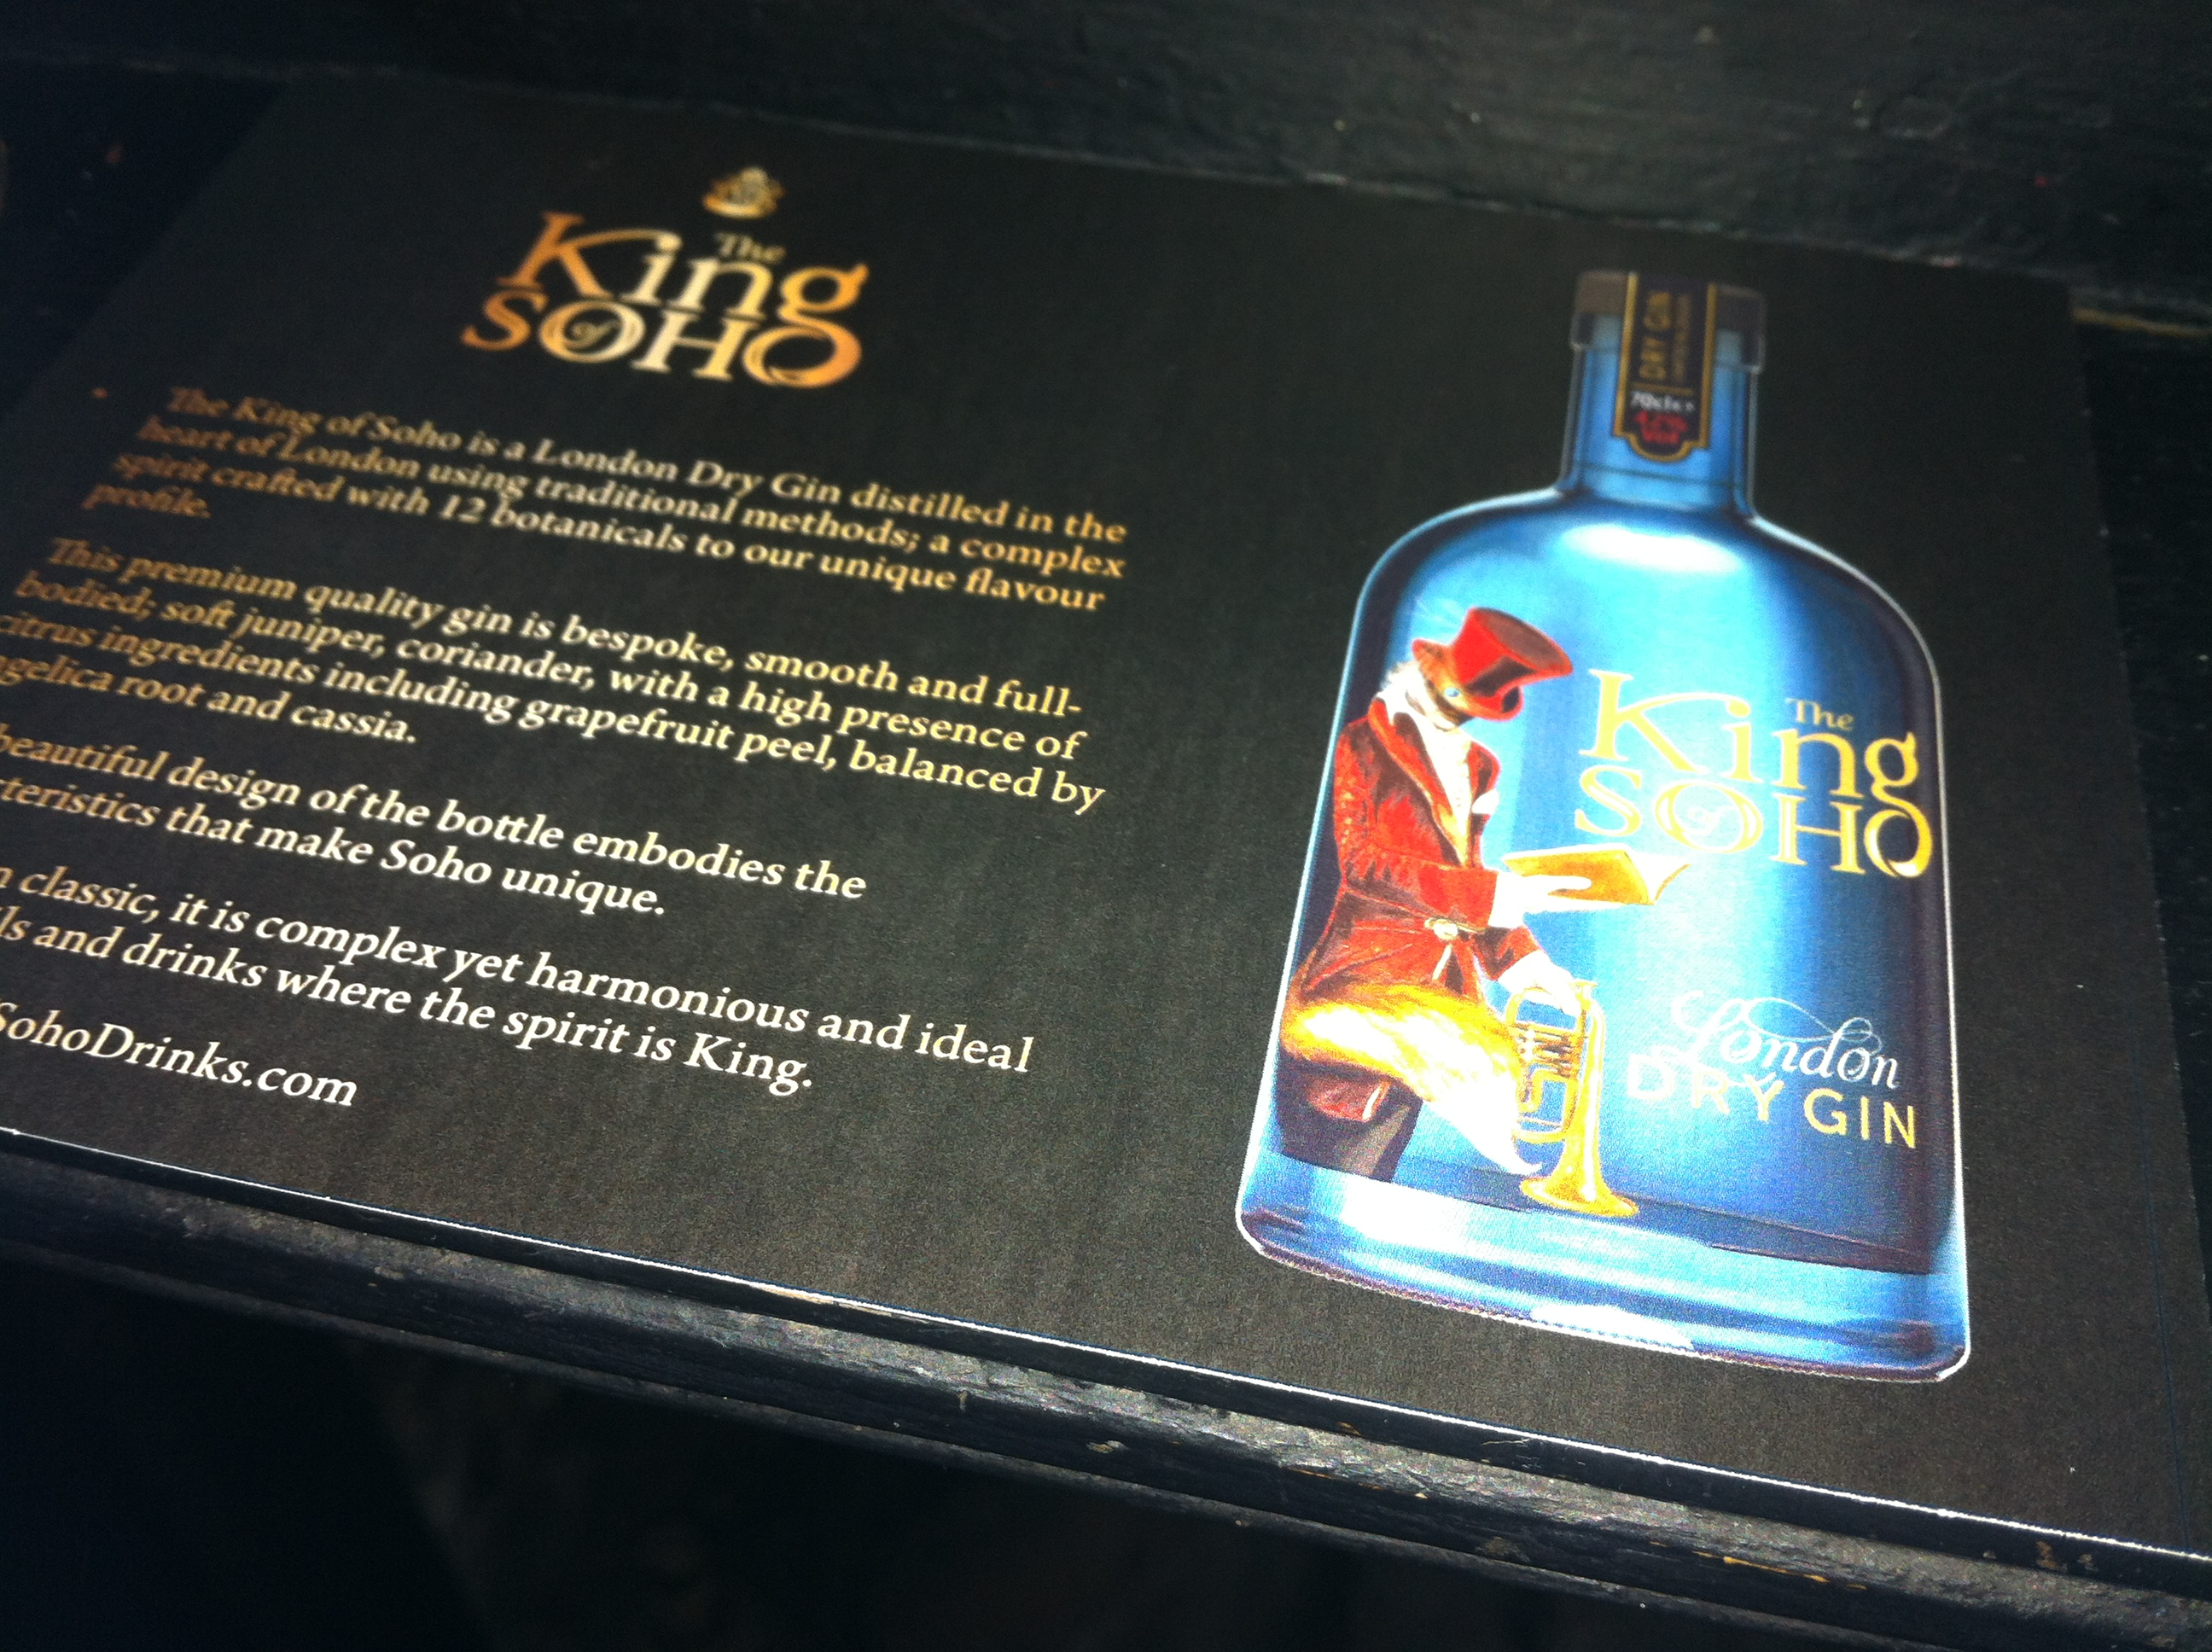 The legacy lives on - King of Soho dry gin